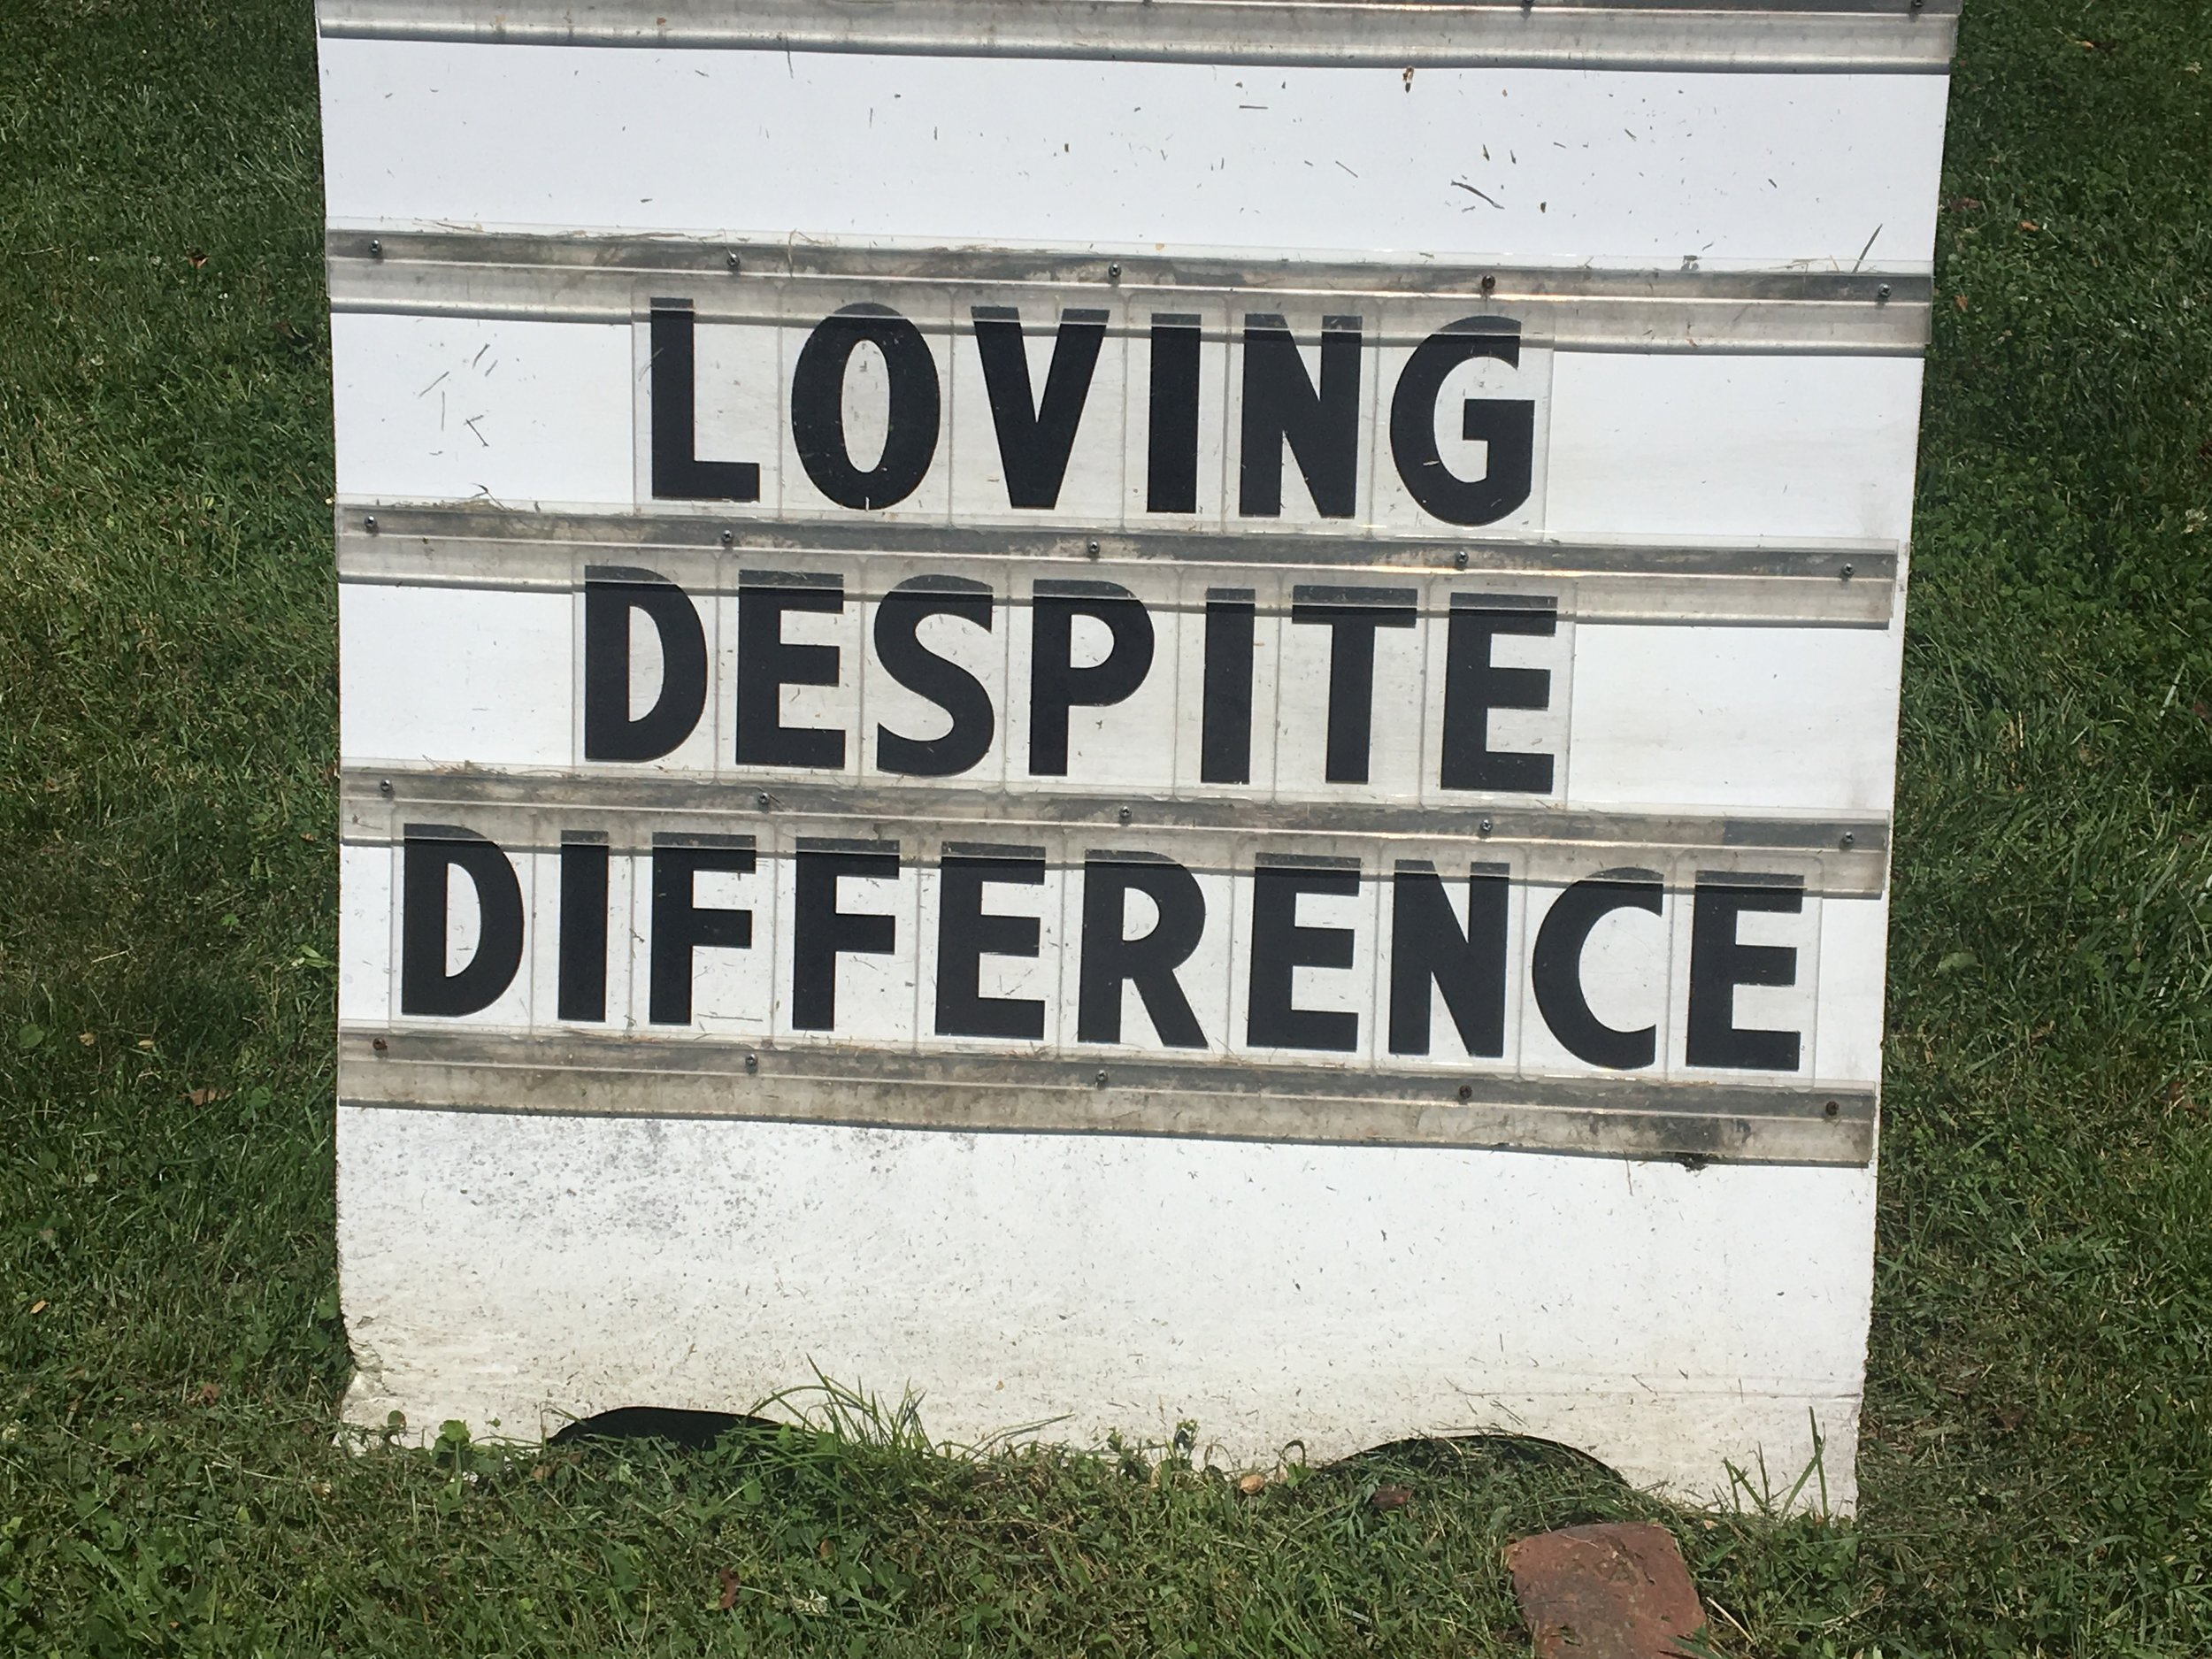 (The placard outside the United Methodist Church of New Canaan this past week. How wonderful to think of all the people who saw this message as they passed by and how it might have been internalized.)